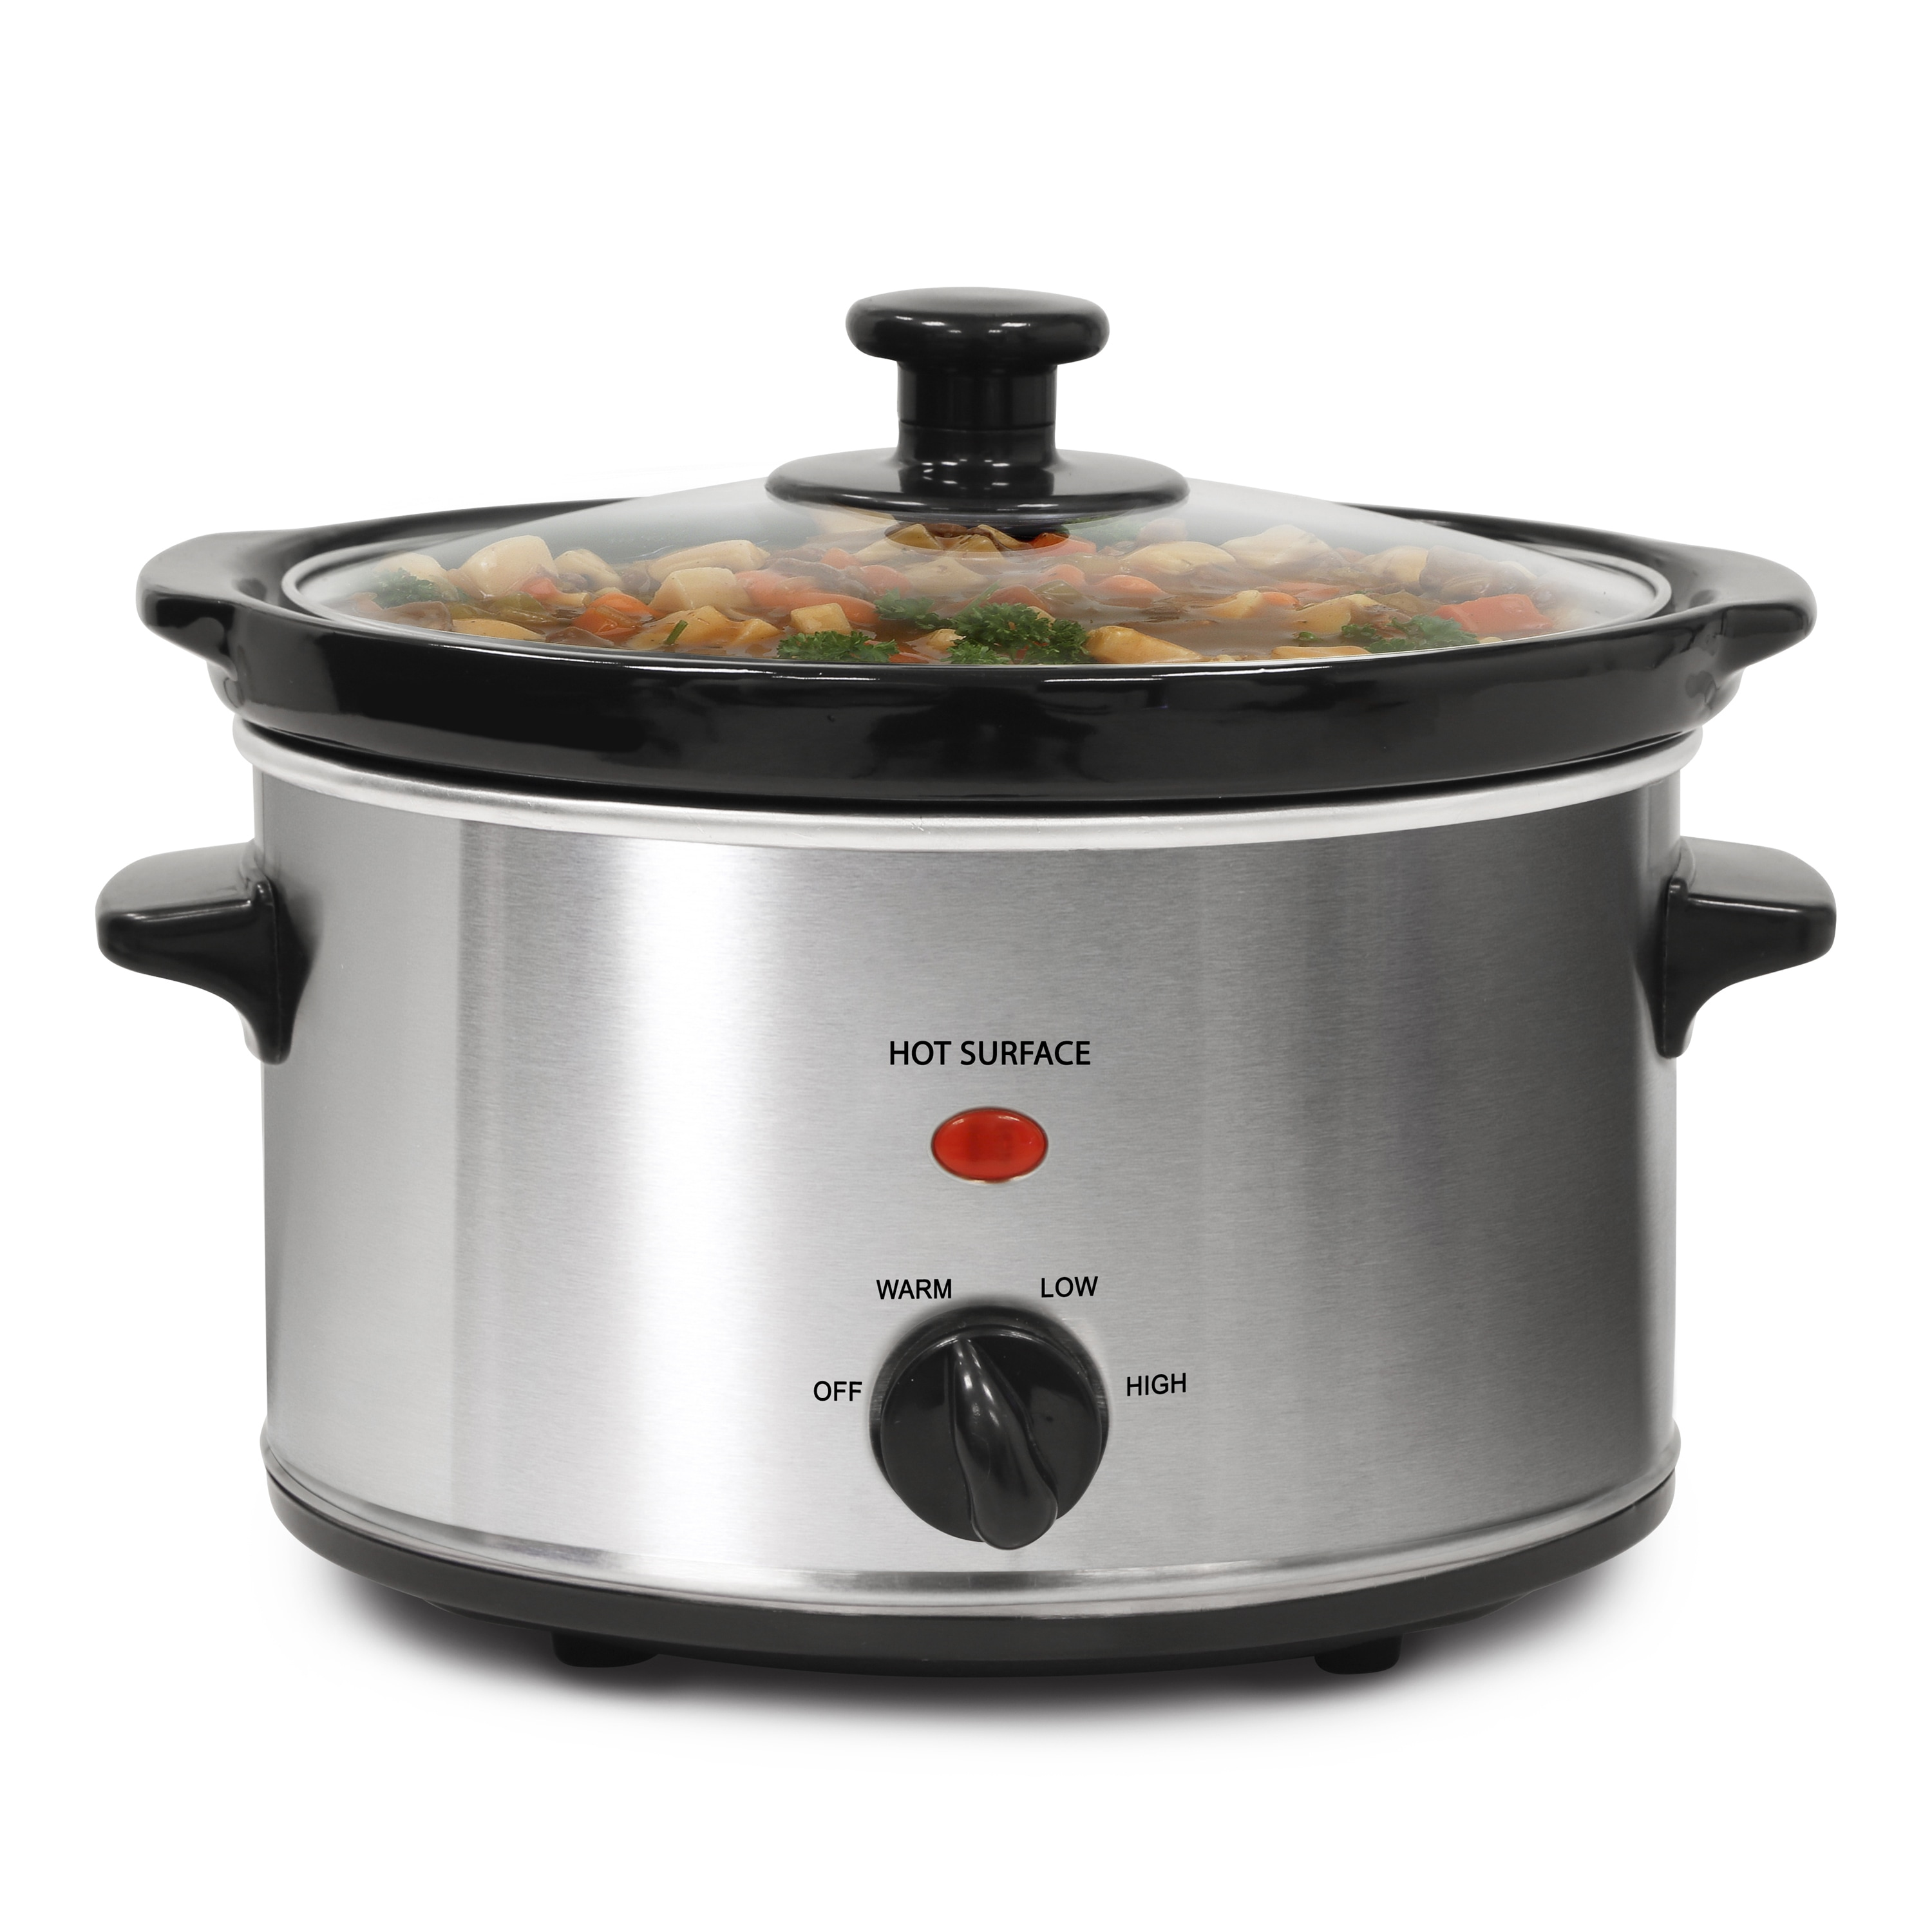 OEM Stainless Steel 2-quart Oval Slow Cooker with 3 Heat ...